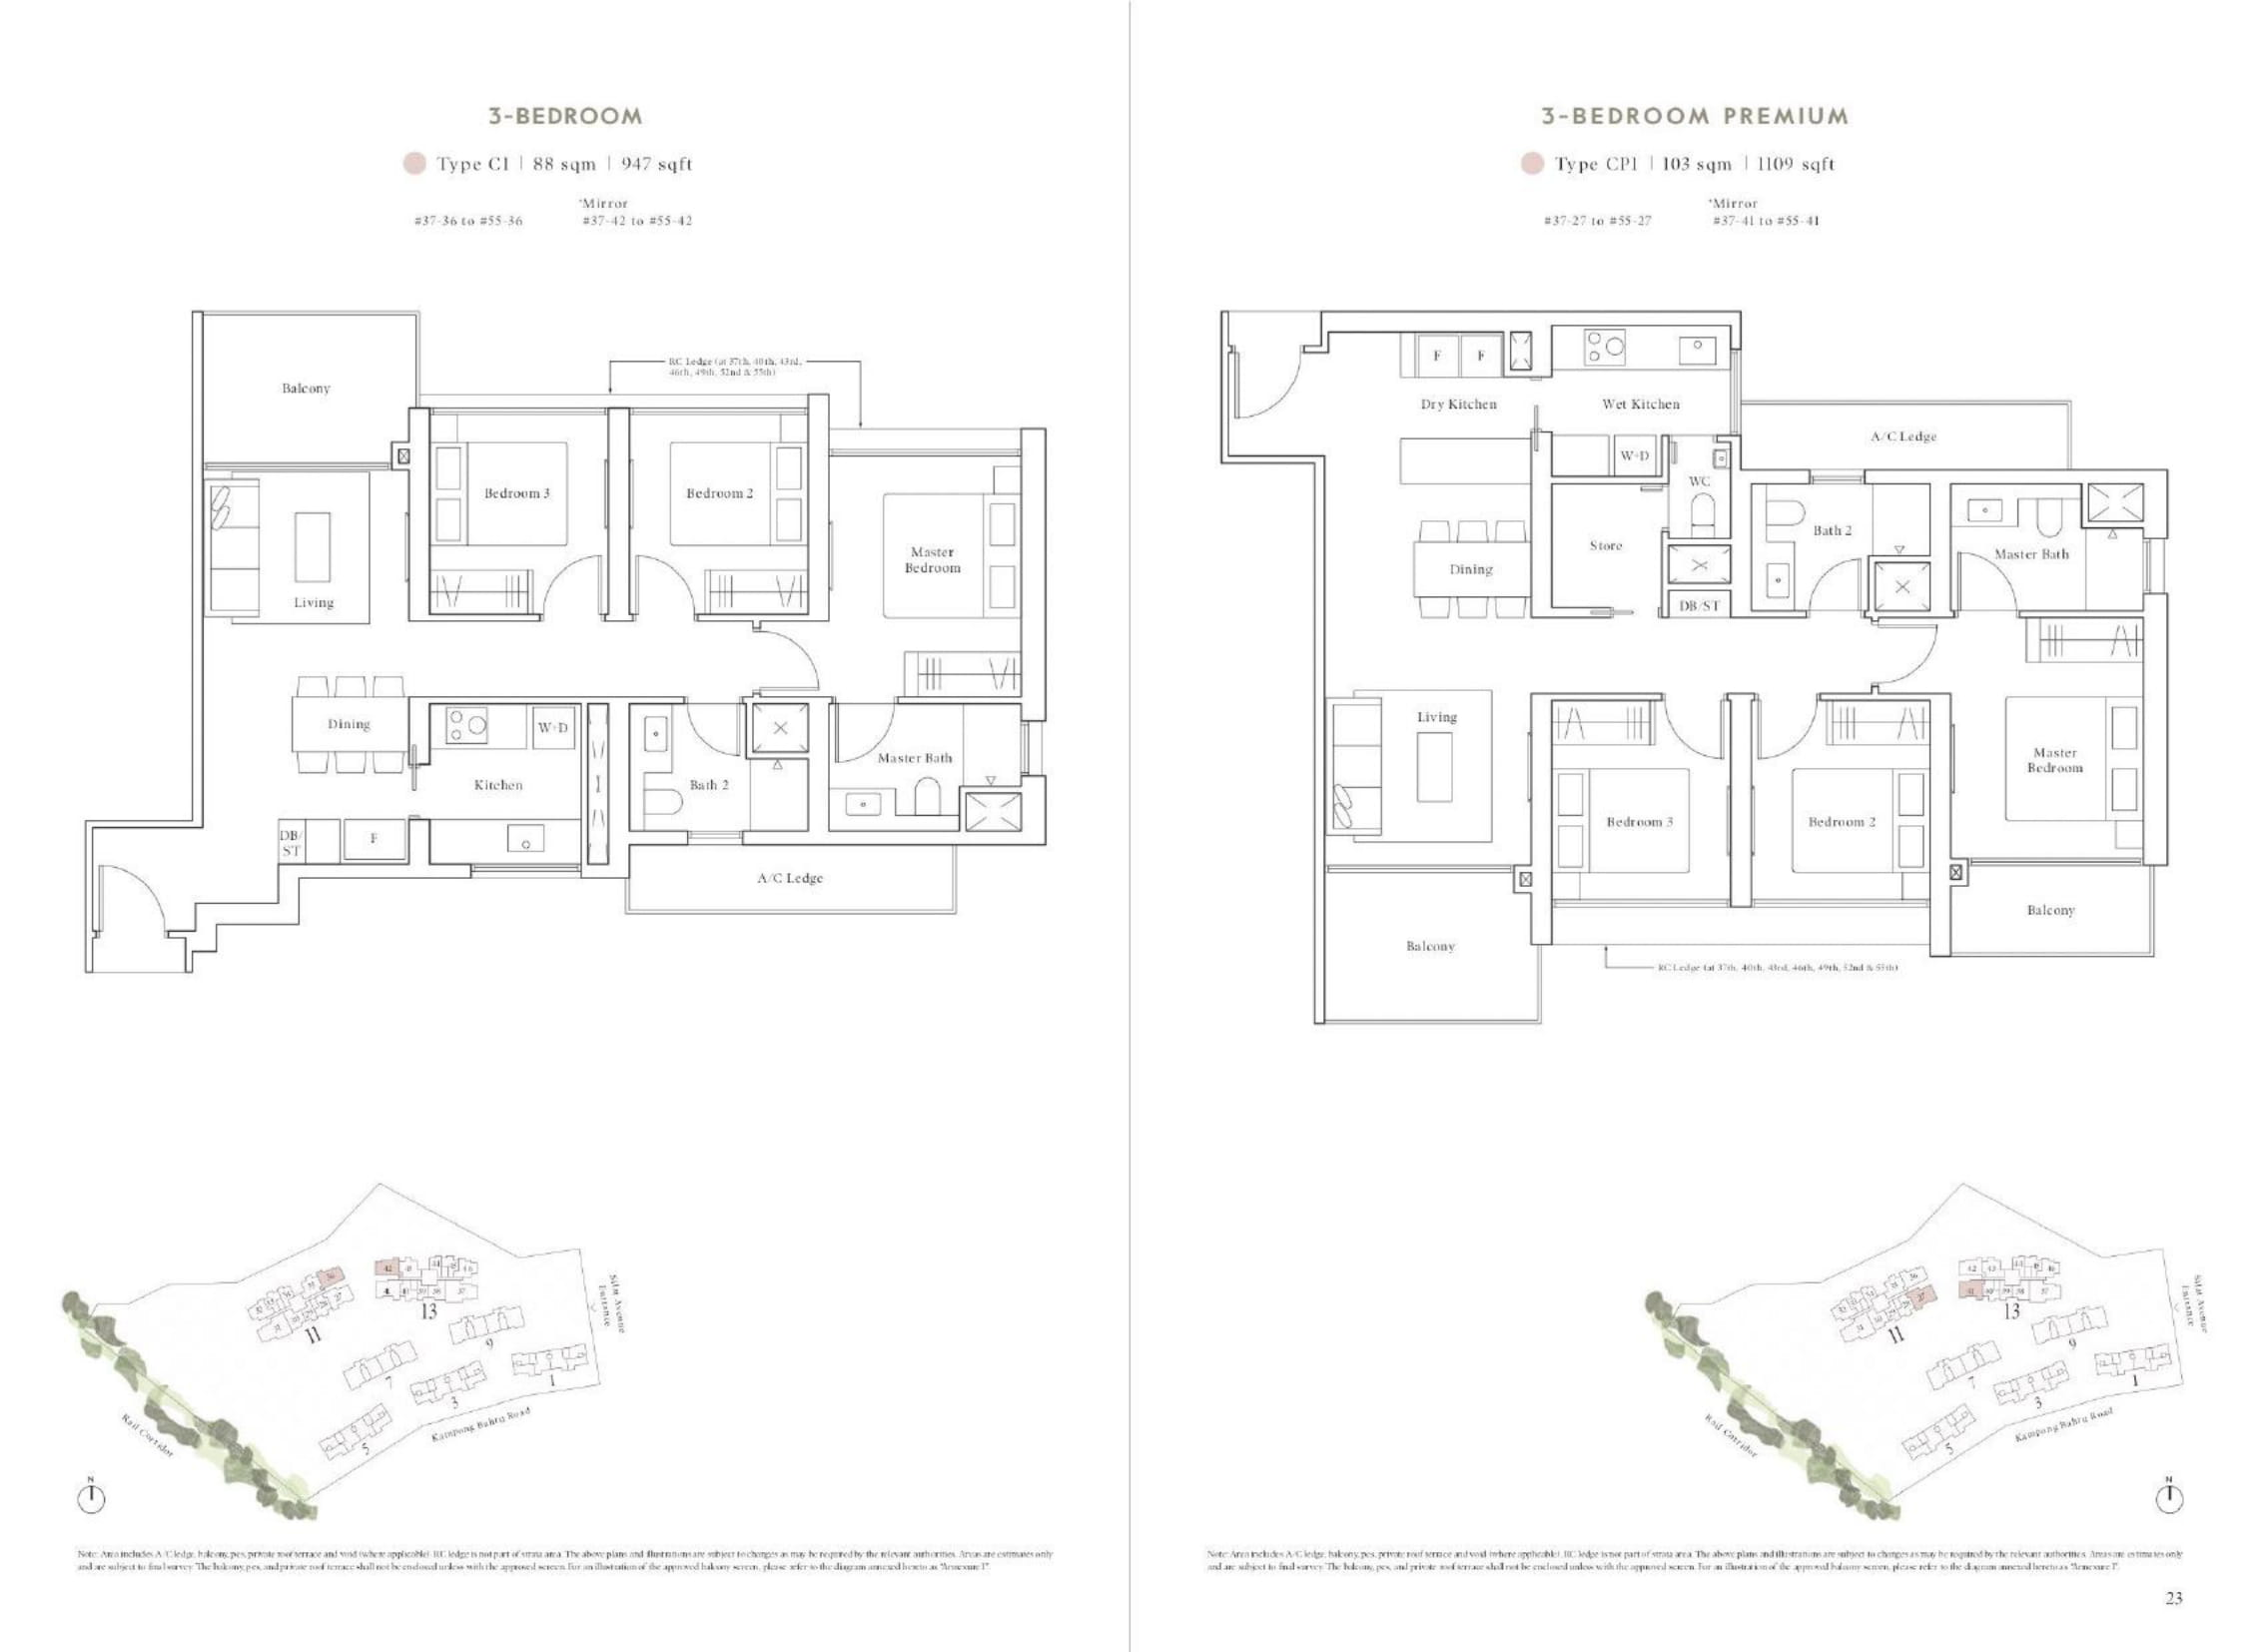 Avenue South Residence's Peak Collection three-bedroom & three-bedroom premium types